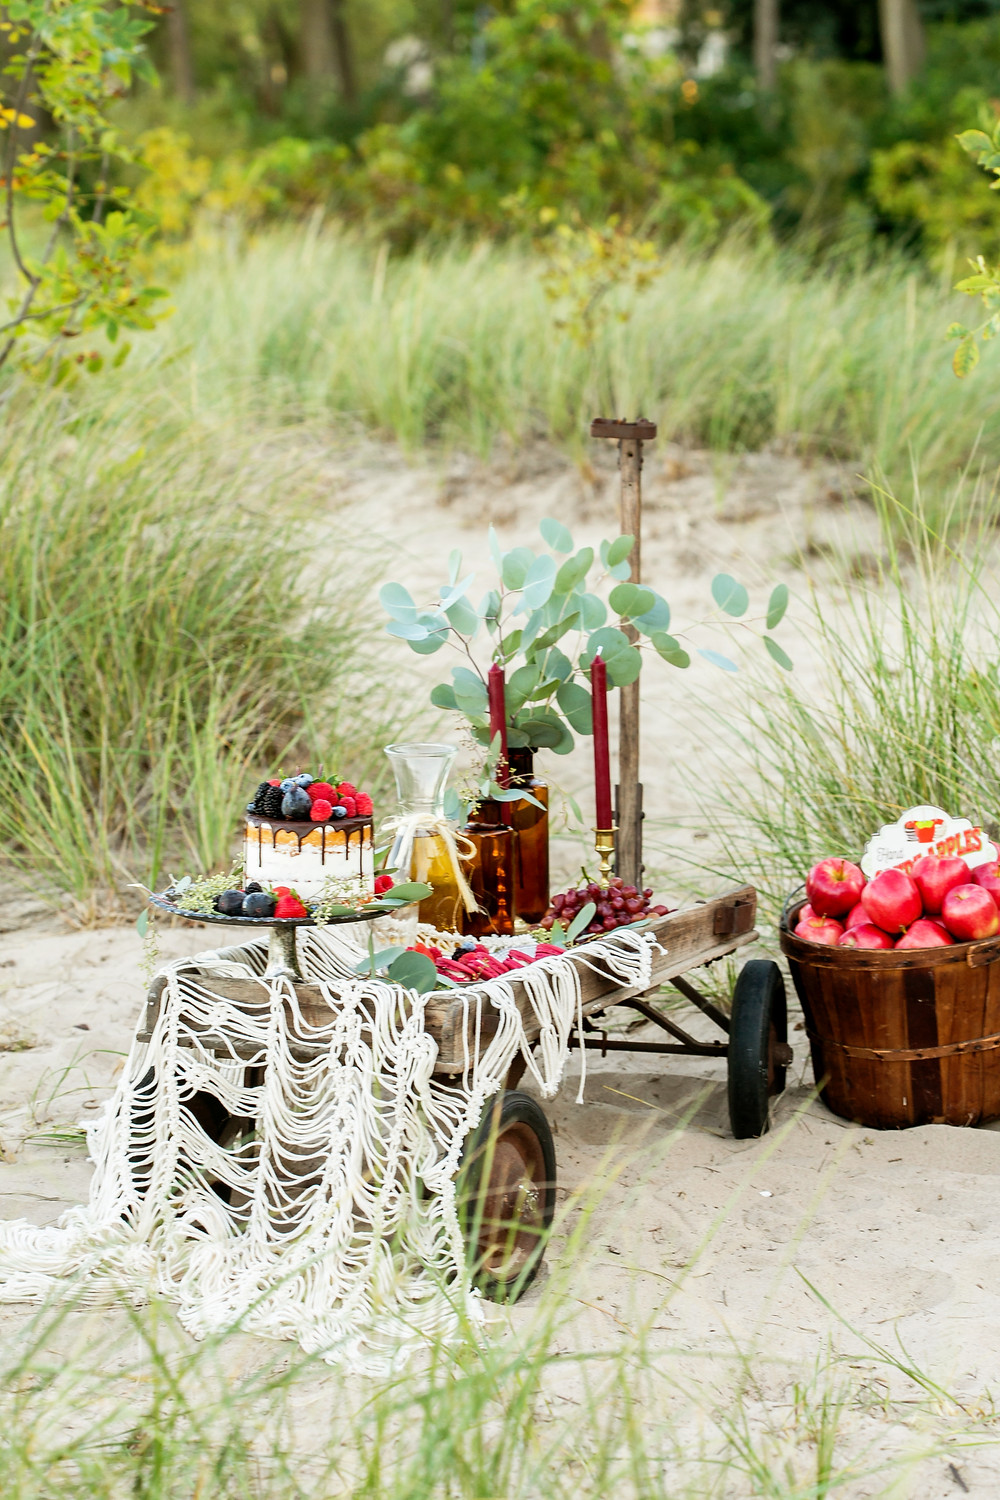 Picnic at the beach with vintage wagon sweets table and apple basket filled with treats